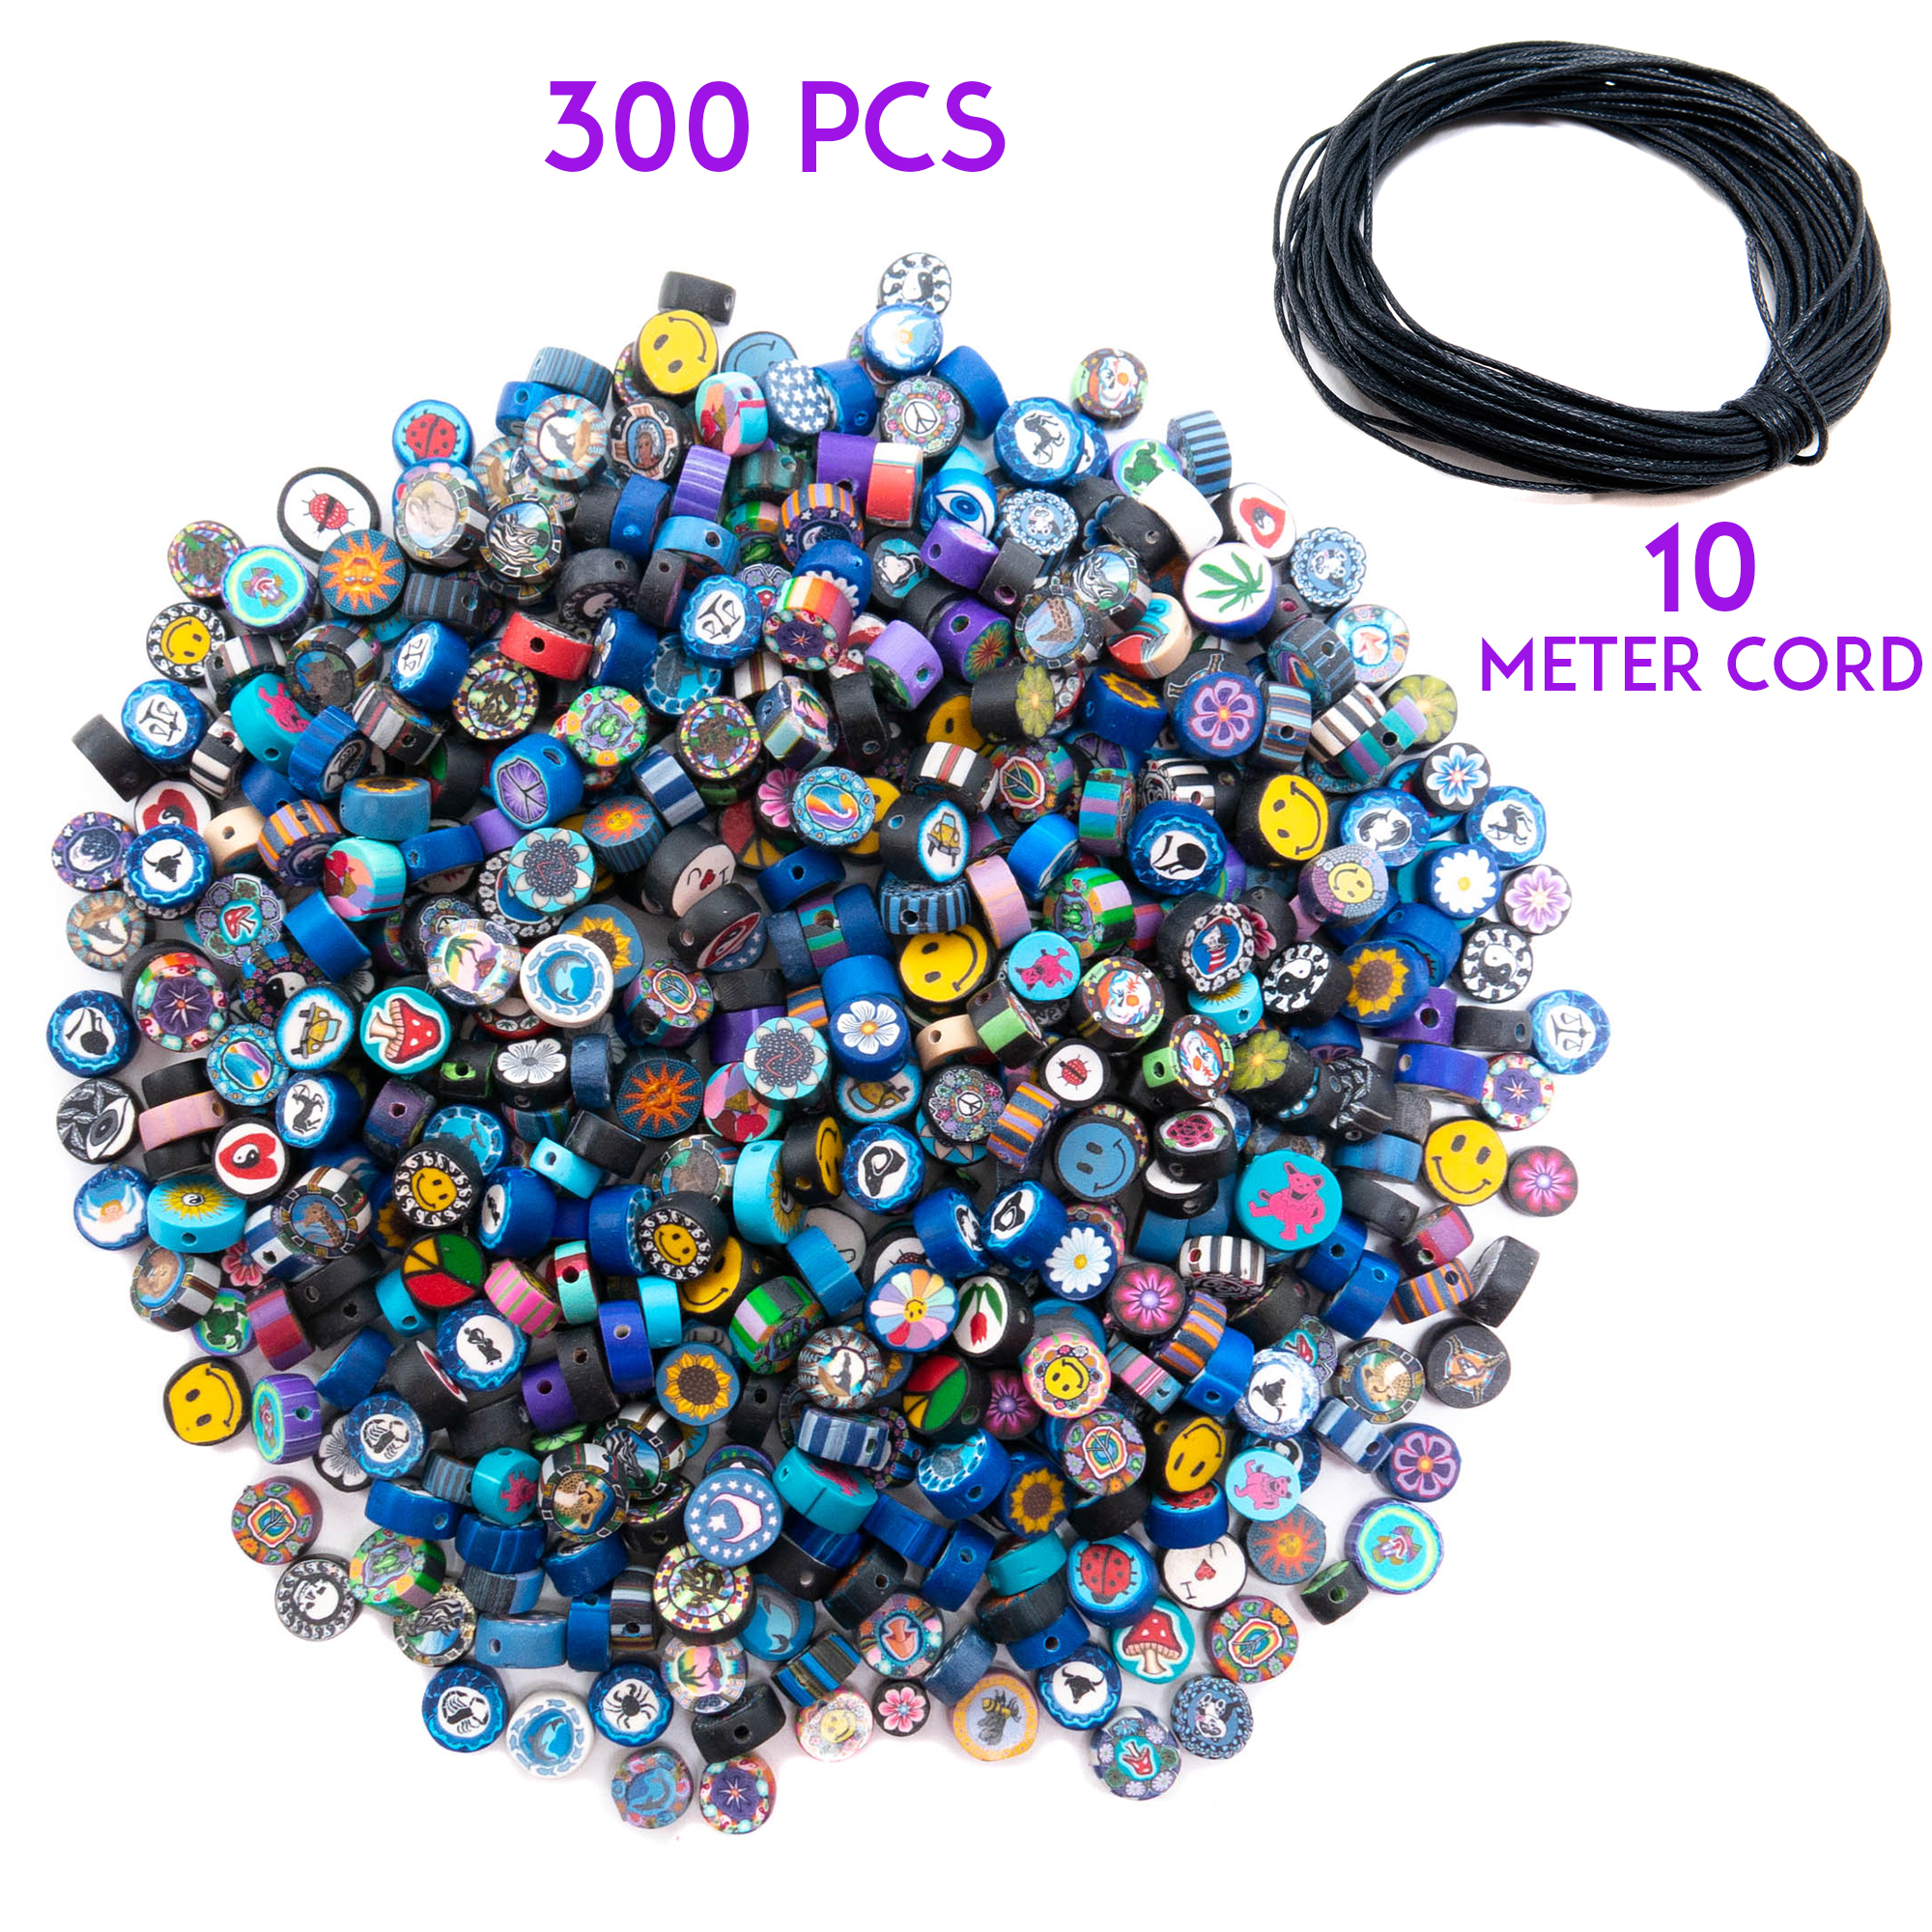 300 Pieces Fimo Disc Beads for Jewelry Making and 10 Meters Wax Cord - DIY Kit for Adults – Great for Necklaces, Bracelets